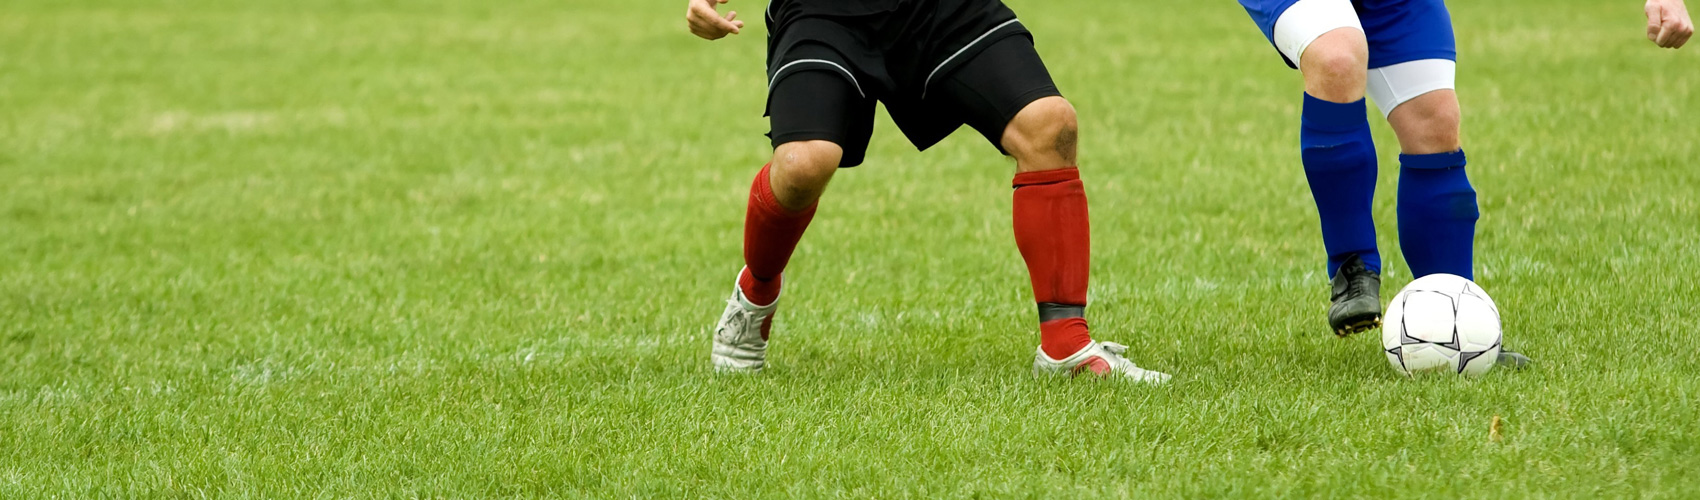 Experts in sports rehabilitation